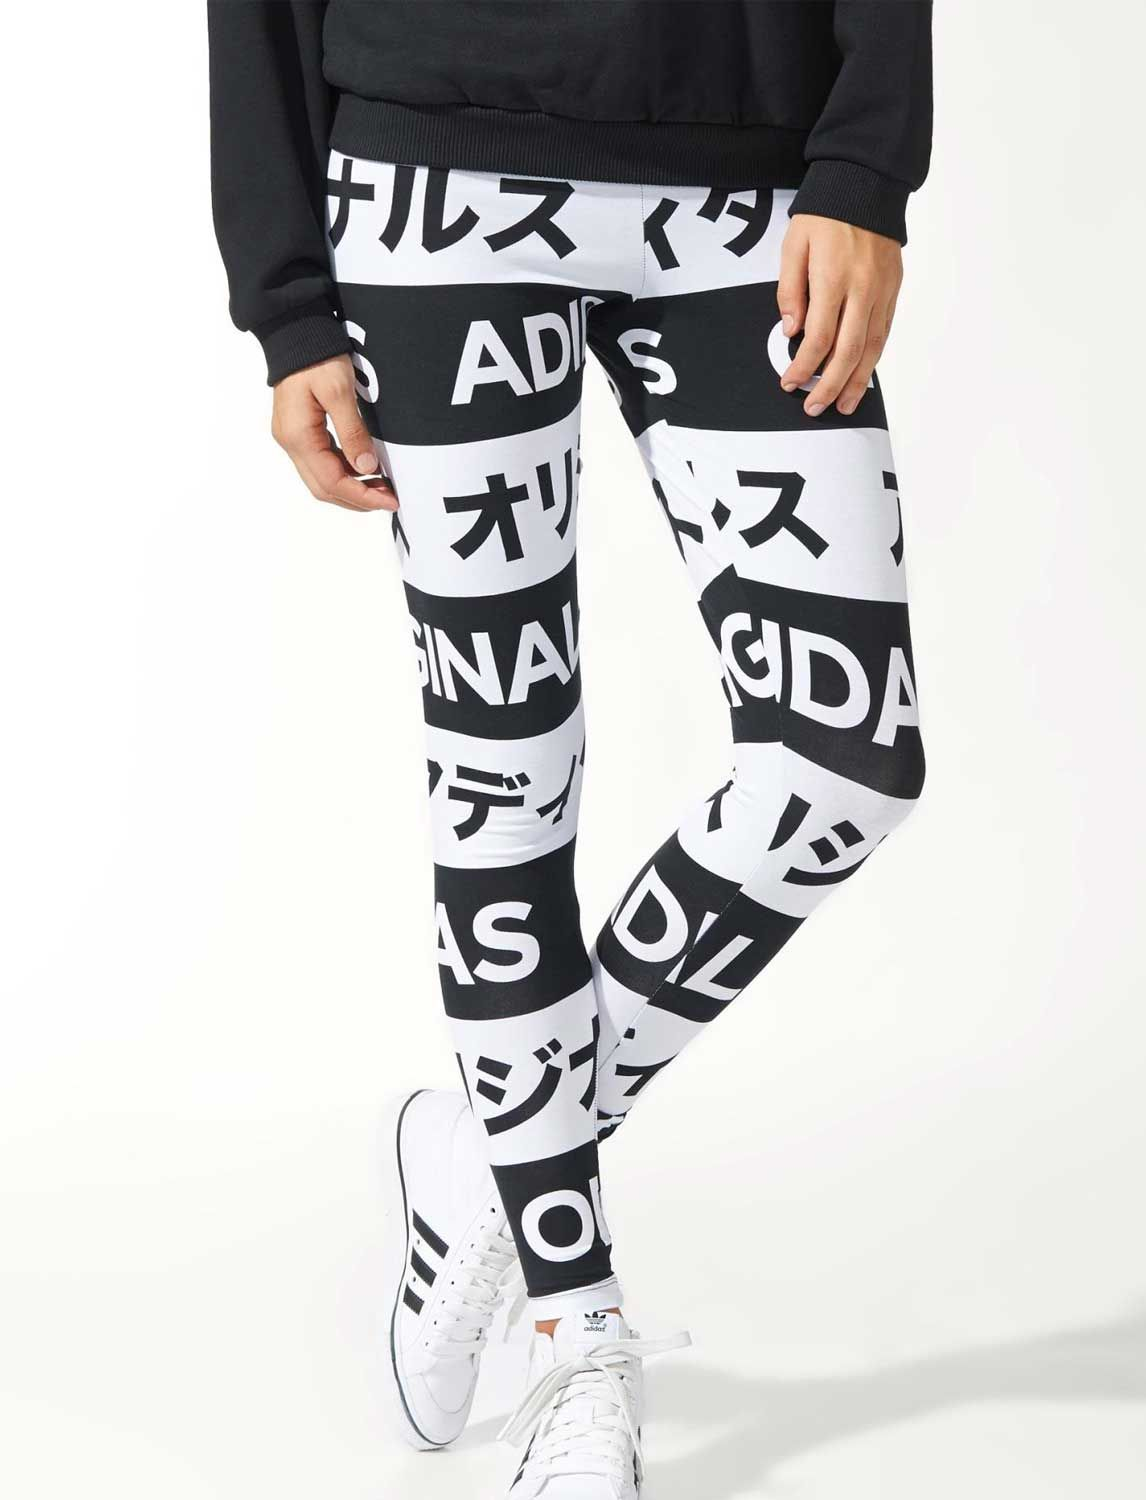 Adidas Originals Typo Leggings Adidas Outfit Japanese Pants Sport Outfit Woman [ 1500 x 1146 Pixel ]